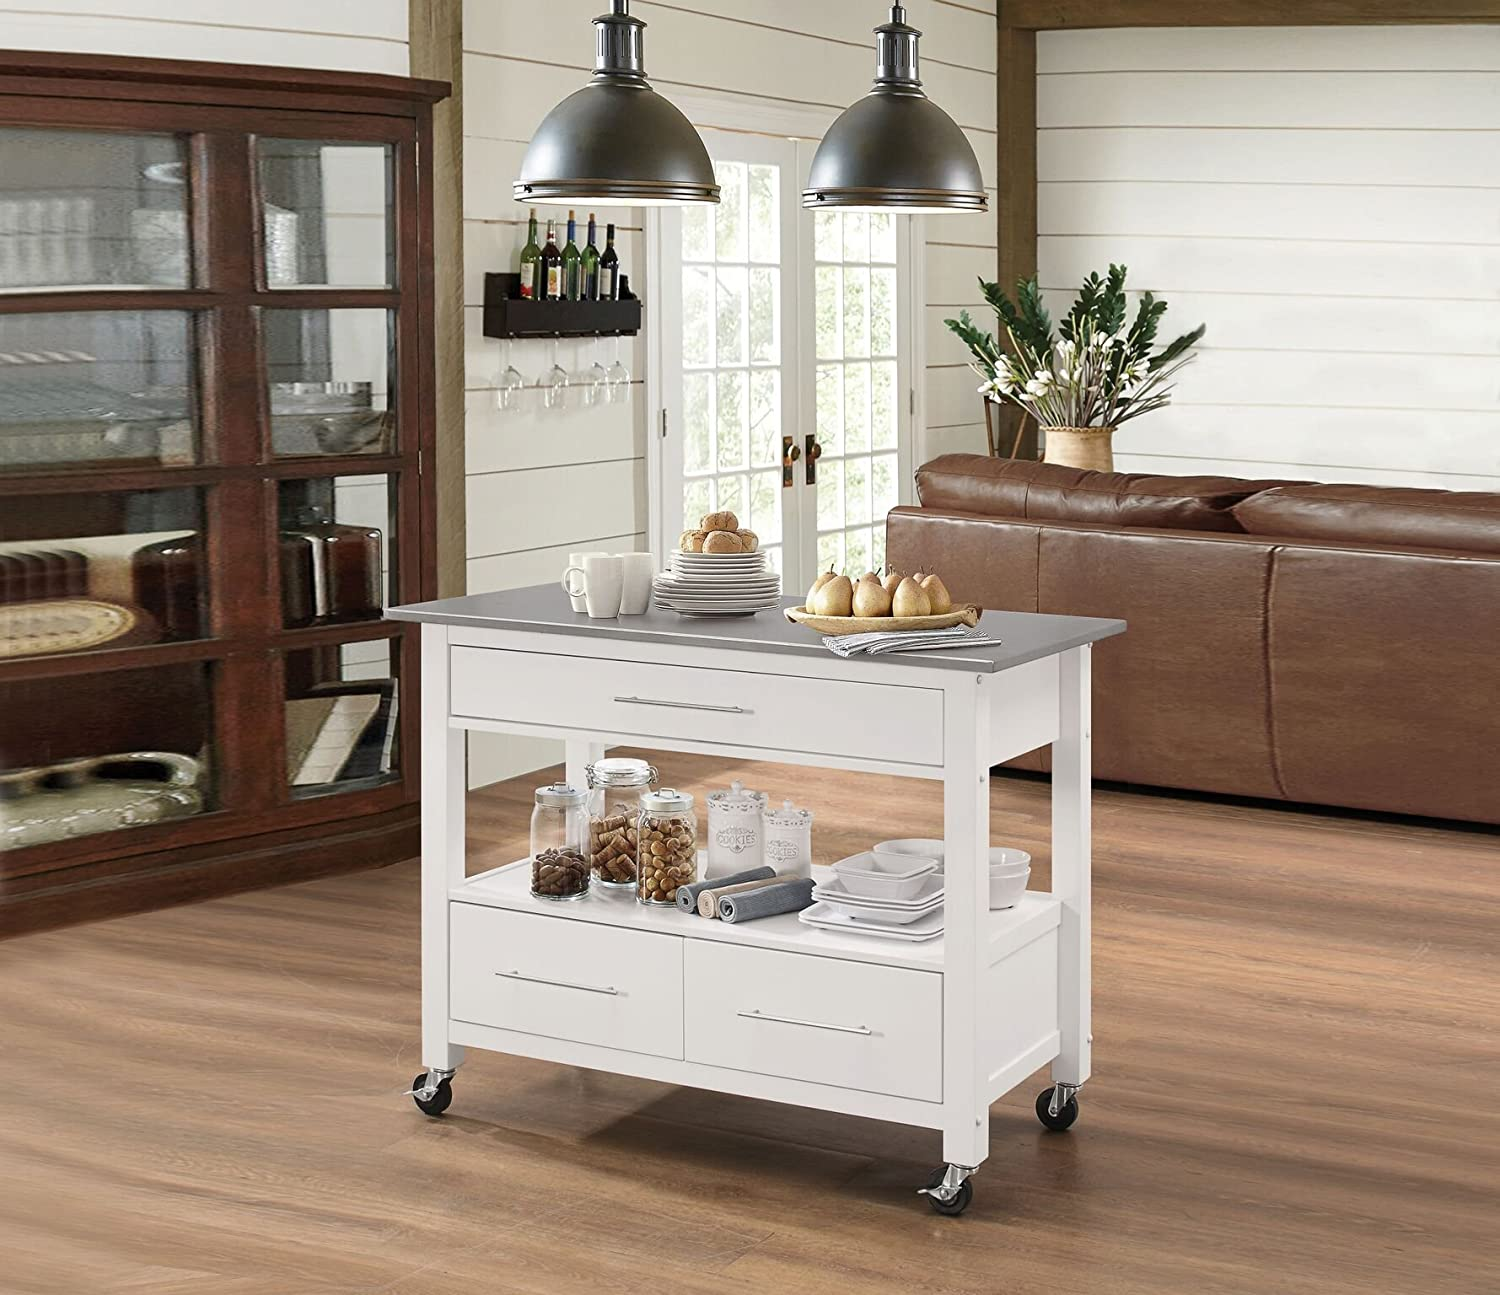 Major-Q 9098330 Stainless Steel and White Finish Wheeled Kitchen Island  Cart with Drawers and Open Storage